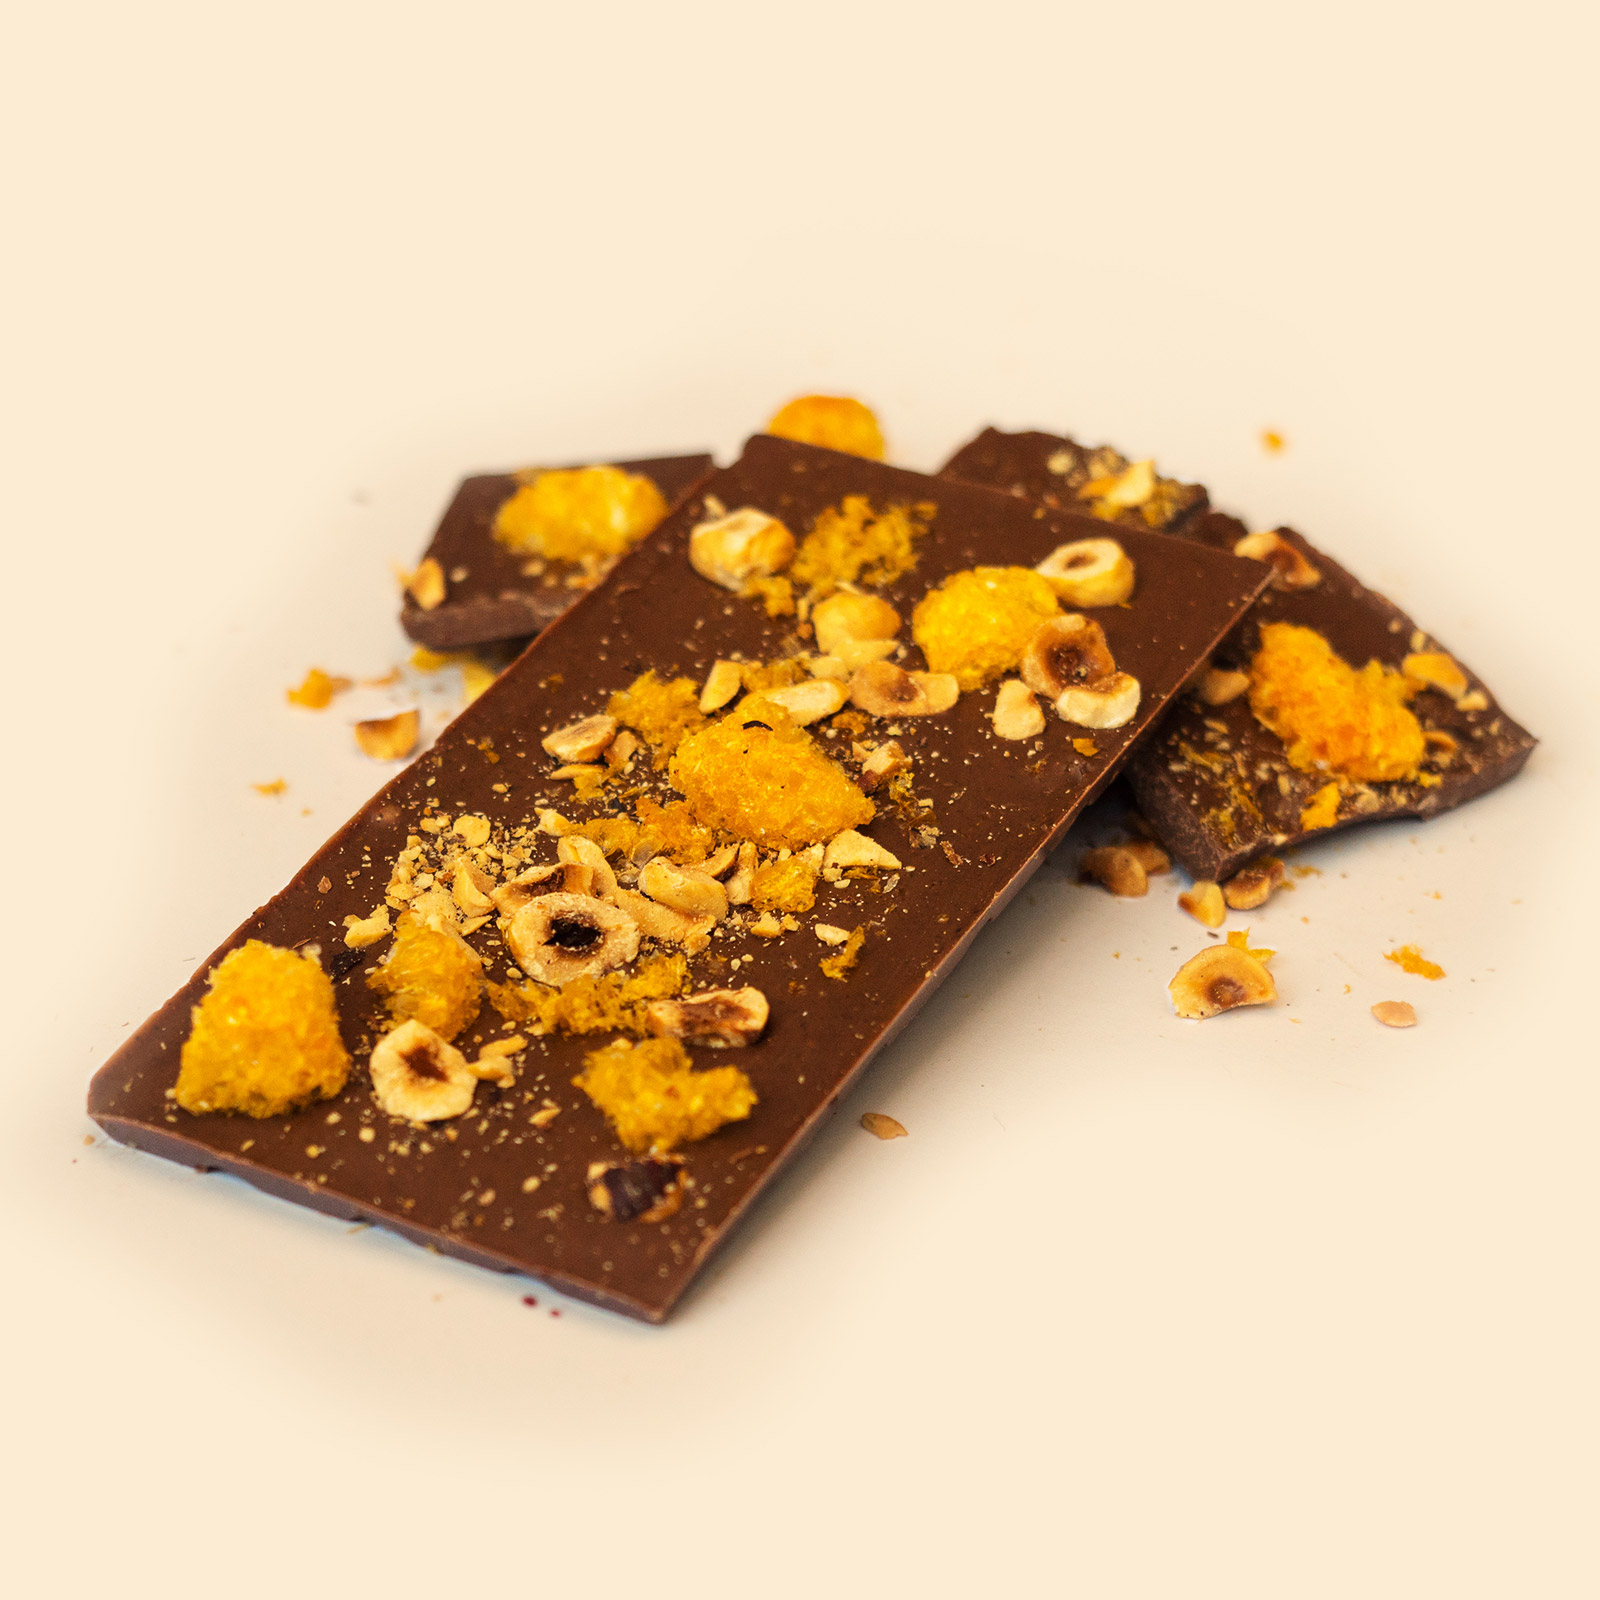 coffee-hazelnut-mandarin-block.jpg